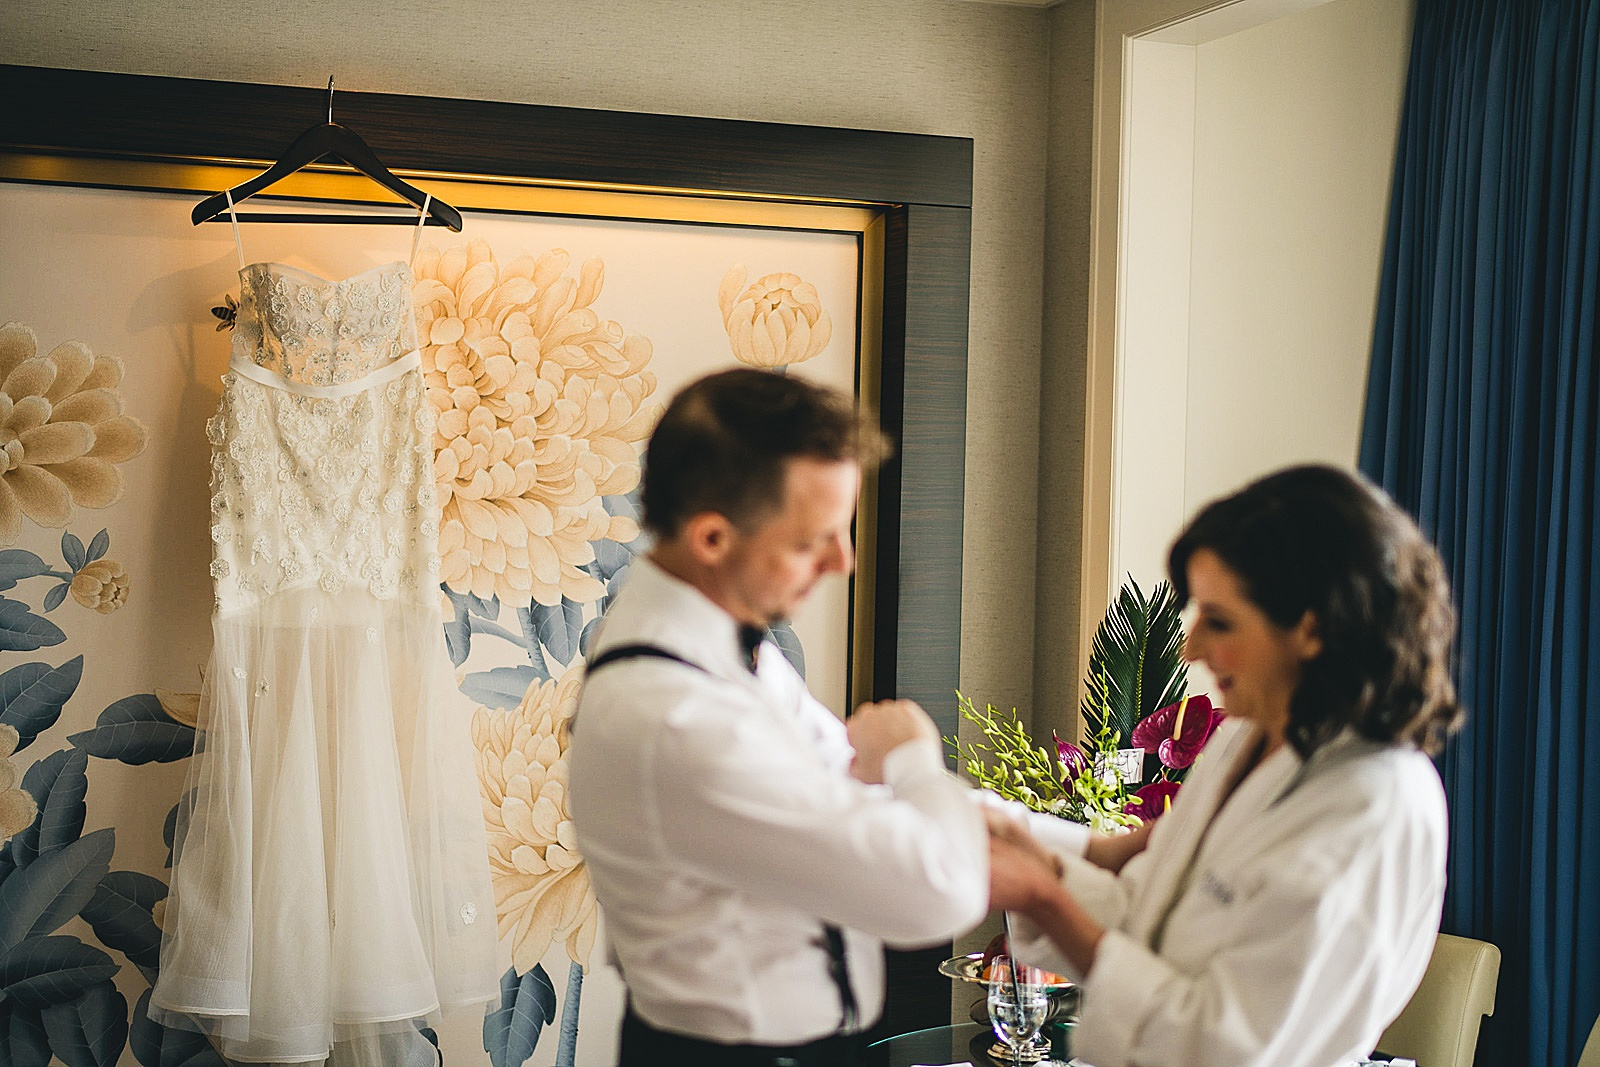 06 bride and groom getting ready together inspiration - Chicago Illuminating Company Wedding // Samantha + Jeremy